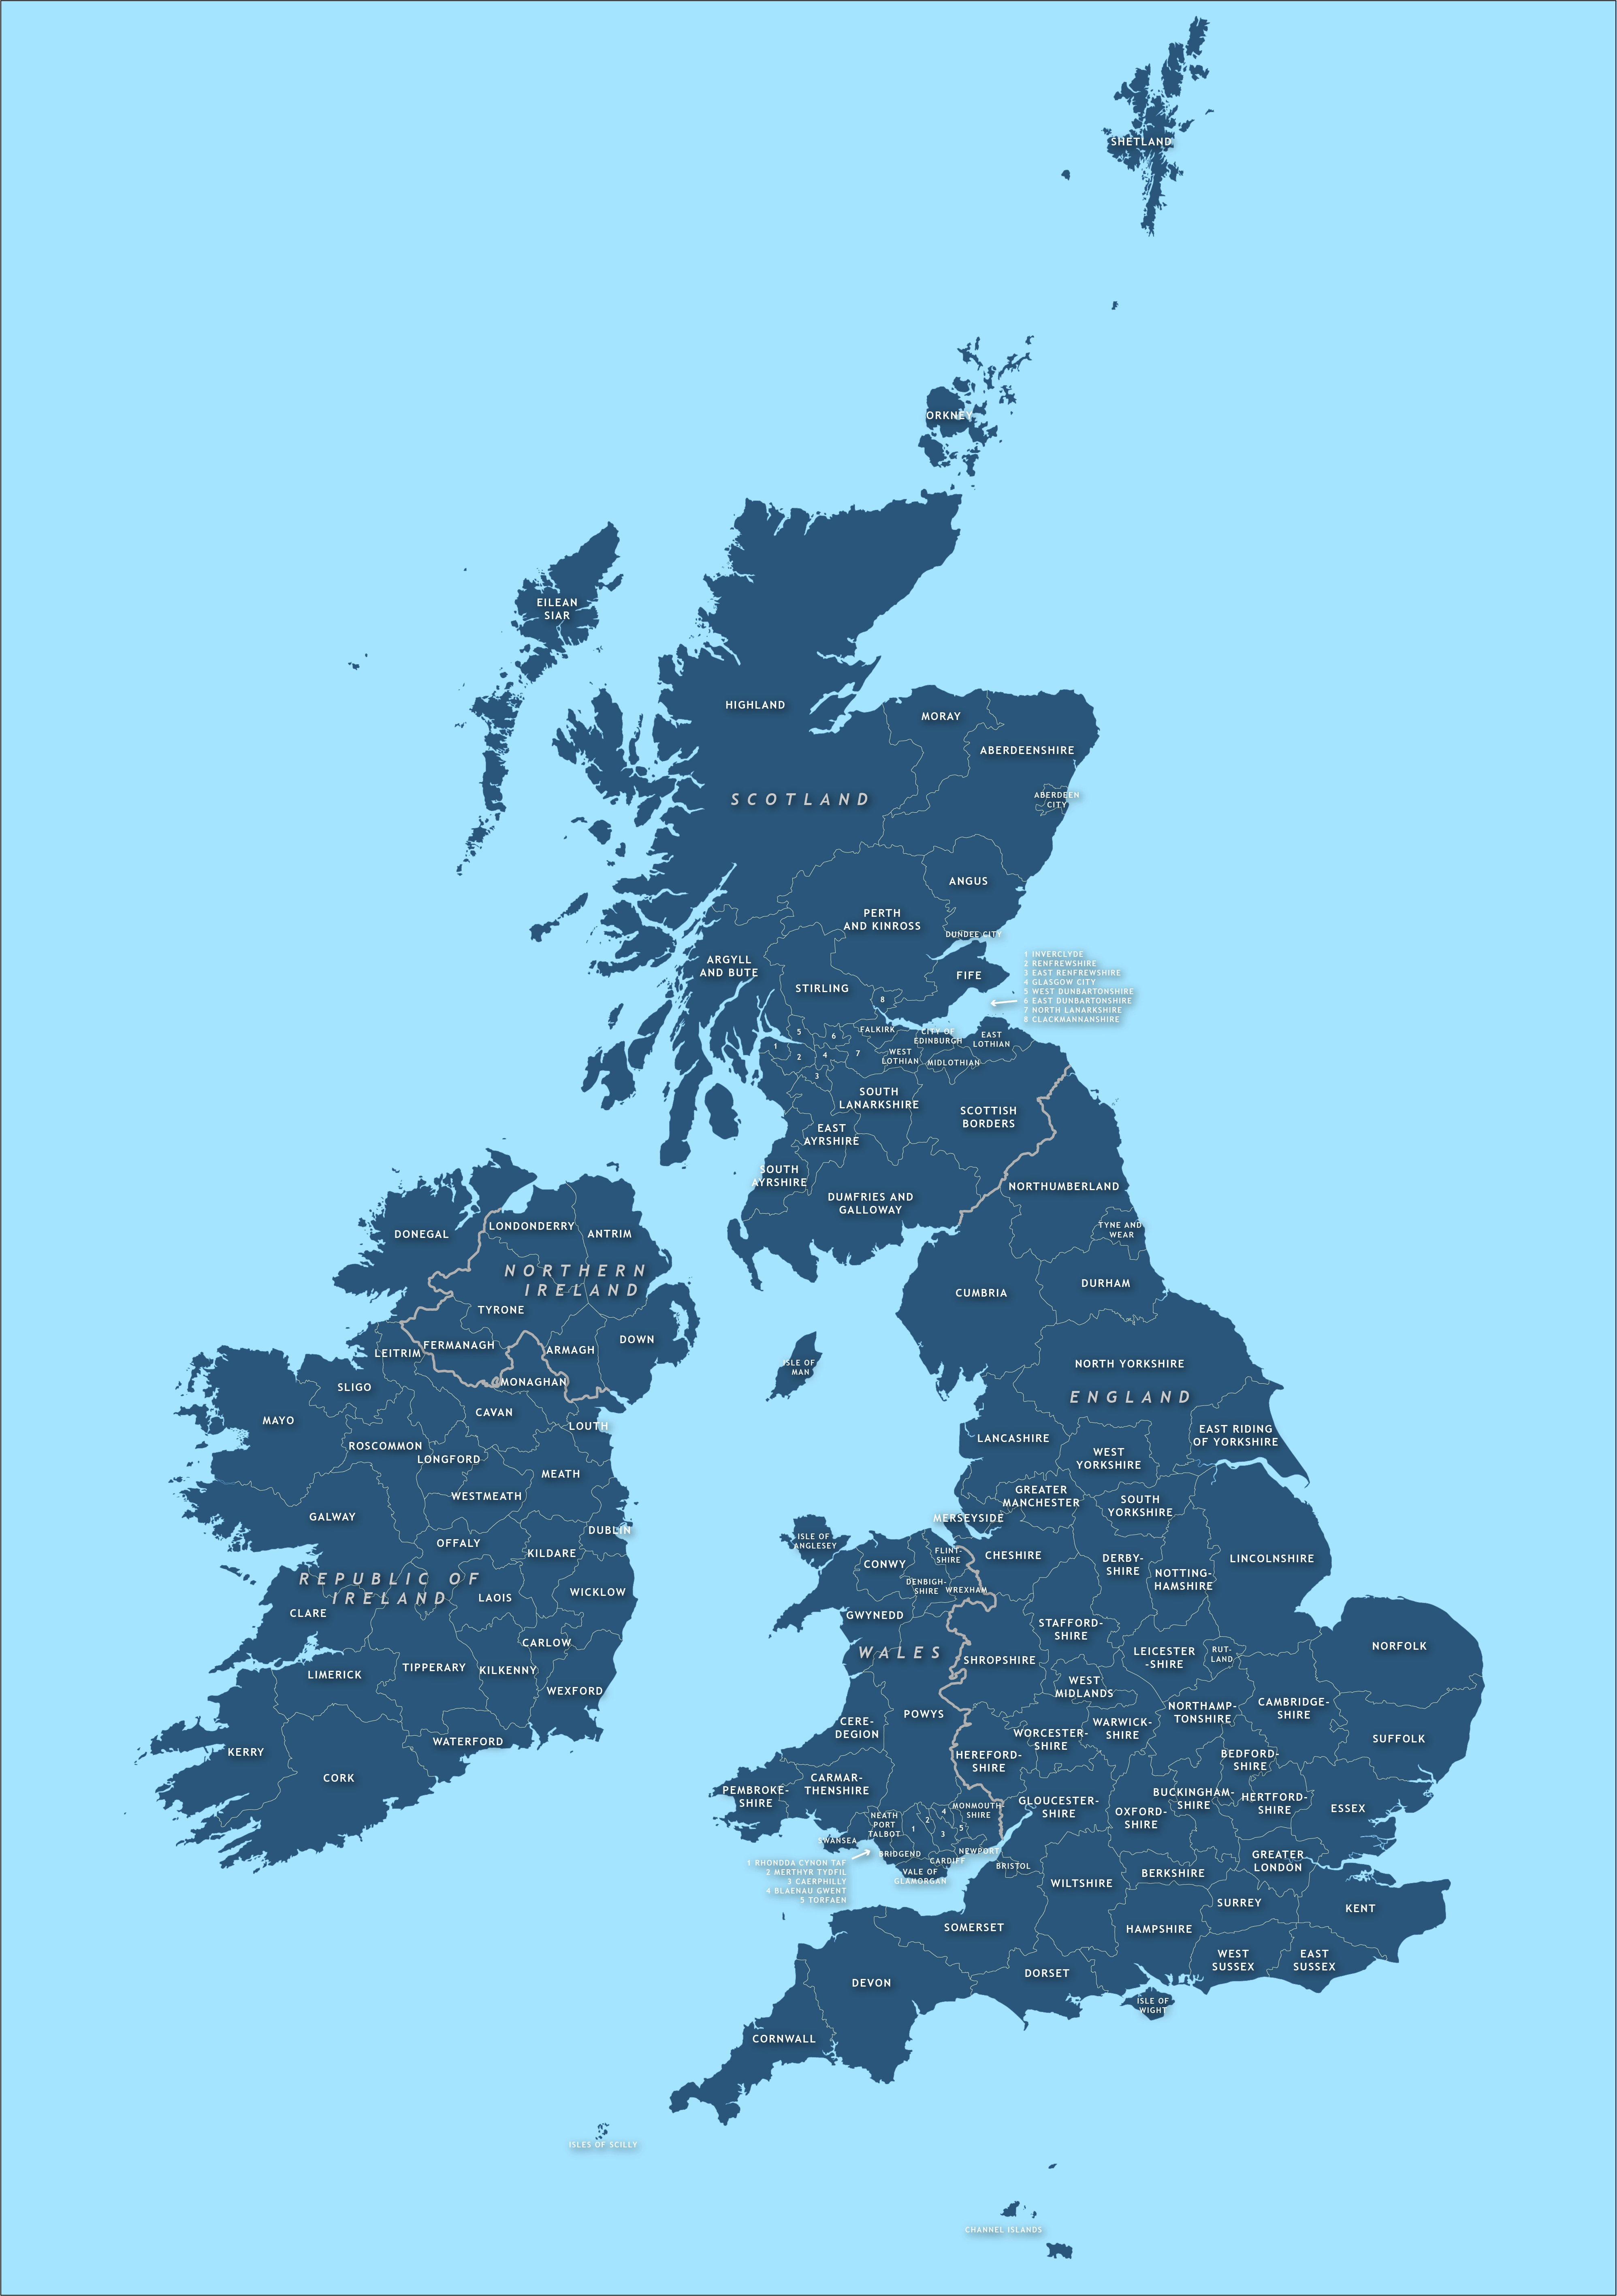 County Map Of Britain And Ireland - Royalty Free Vector Map - Maproom - Free Printable Map Of Uk And Ireland